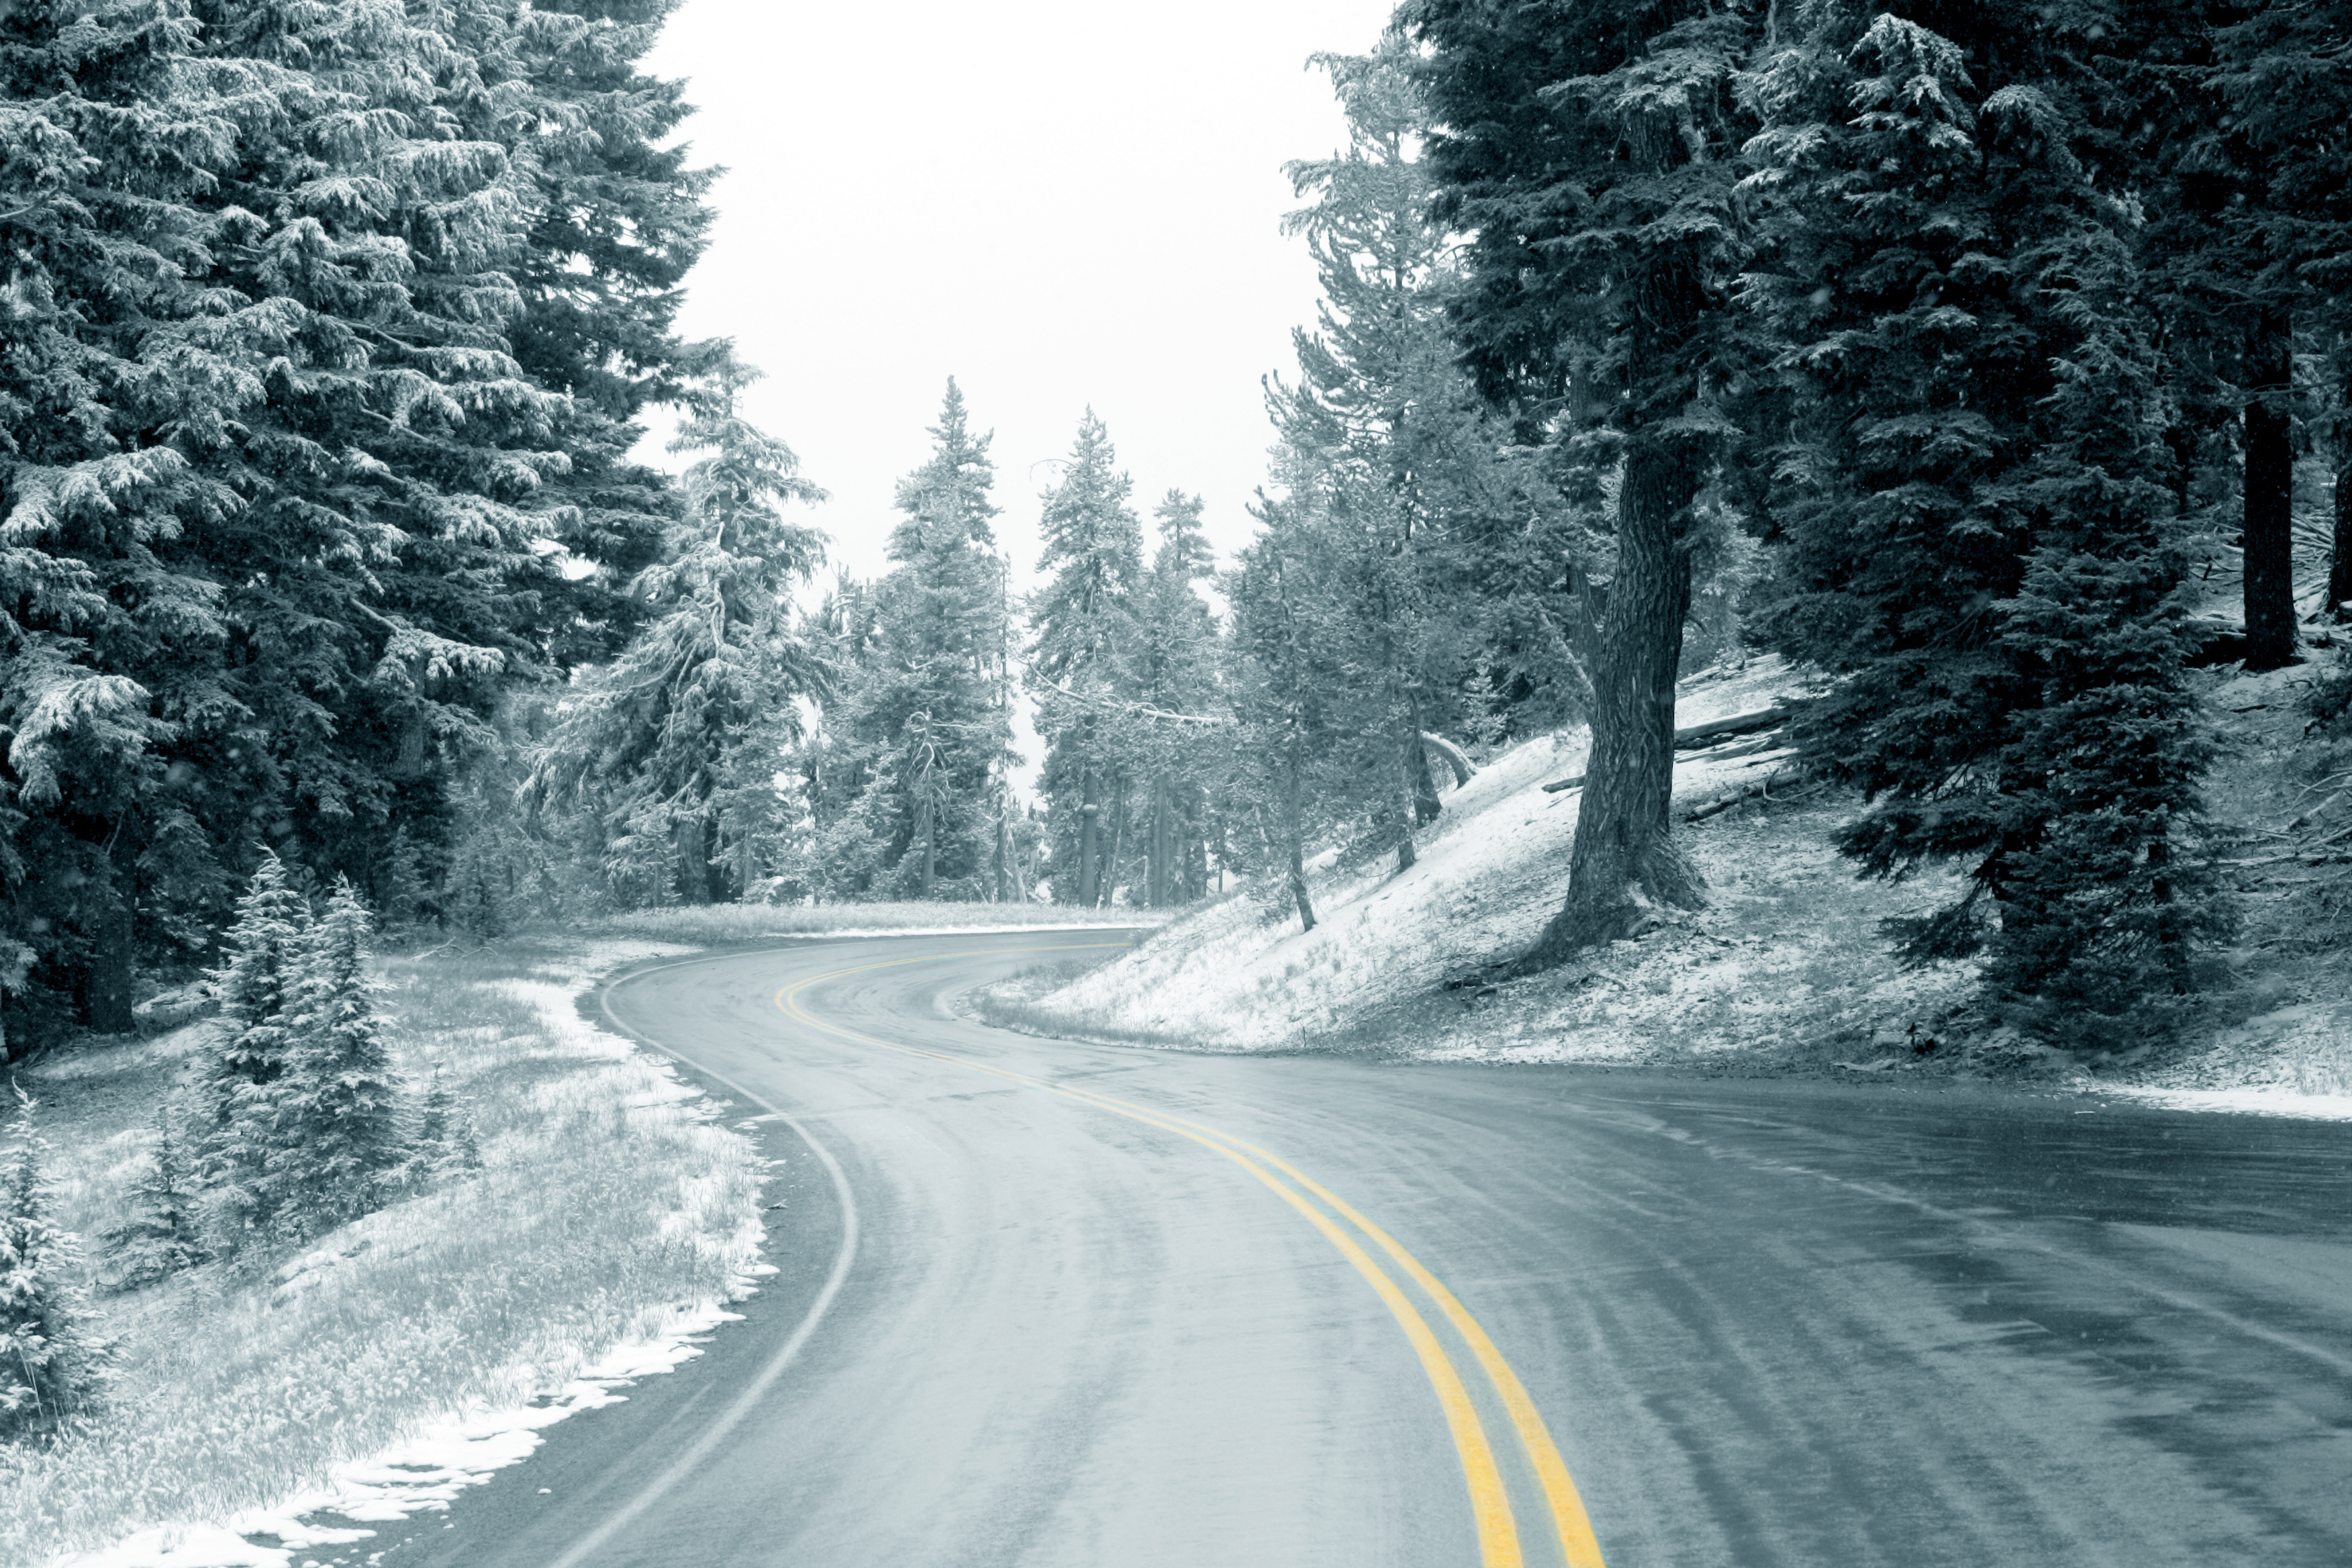 Winter road with orange markings wallpapers and images - wallpapers ...